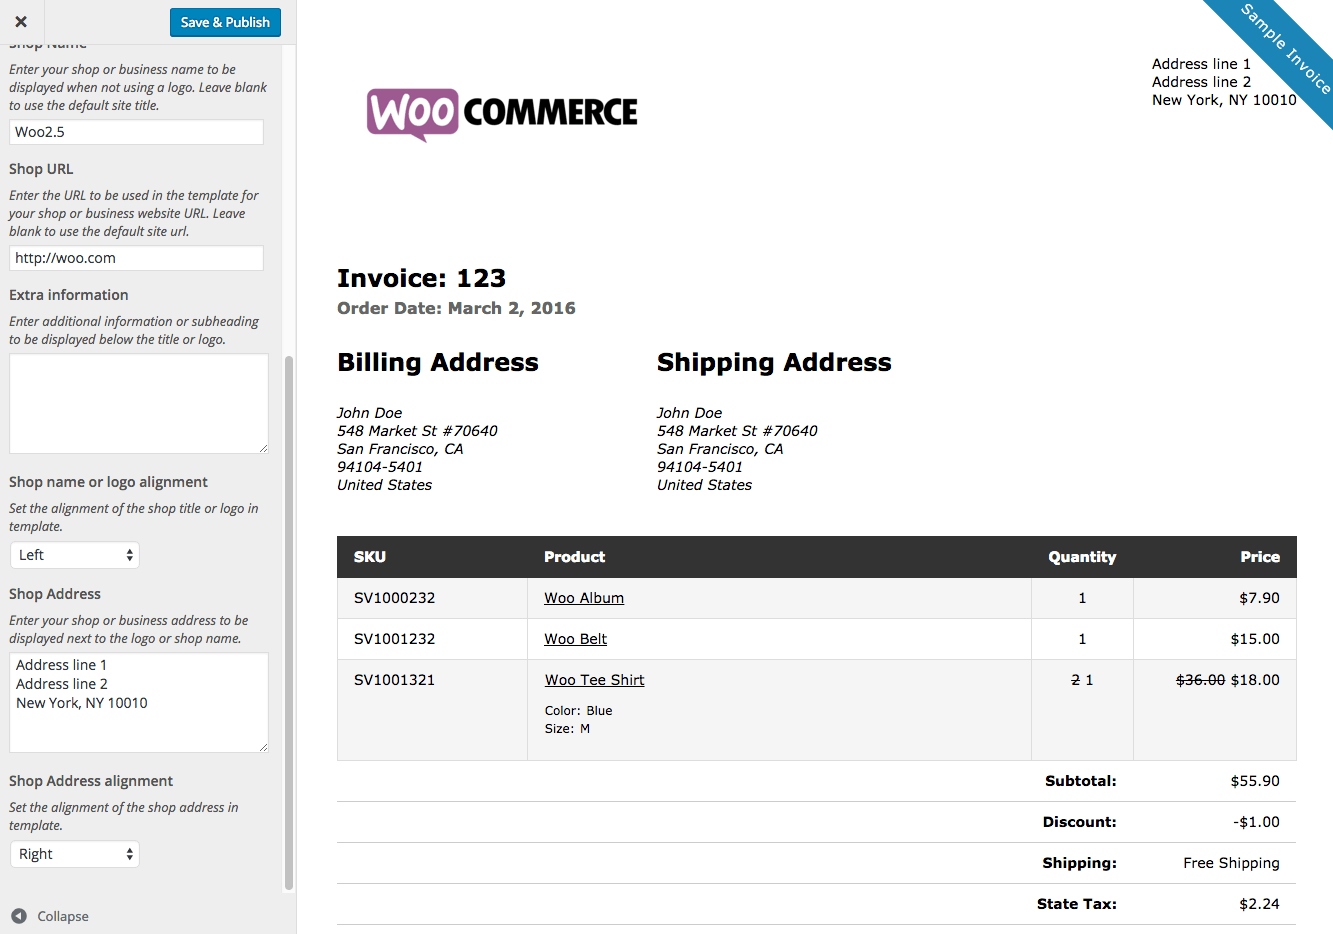 Usdgus  Gorgeous Print Invoices Amp Packing Lists  Woocommerce With Outstanding Woocommerce Print Invoices  Packing Lists Customizer With Agreeable Acknowledge Receipt Of Goods Also Mahadiscom Online Bill Payment Receipt In Addition Online Cash Receipt Generator And Limo Receipt Template As Well As Rent Receipt Generator Additionally Sample Receipt For Money Received From Woocommercecom With Usdgus  Outstanding Print Invoices Amp Packing Lists  Woocommerce With Agreeable Woocommerce Print Invoices  Packing Lists Customizer And Gorgeous Acknowledge Receipt Of Goods Also Mahadiscom Online Bill Payment Receipt In Addition Online Cash Receipt Generator From Woocommercecom